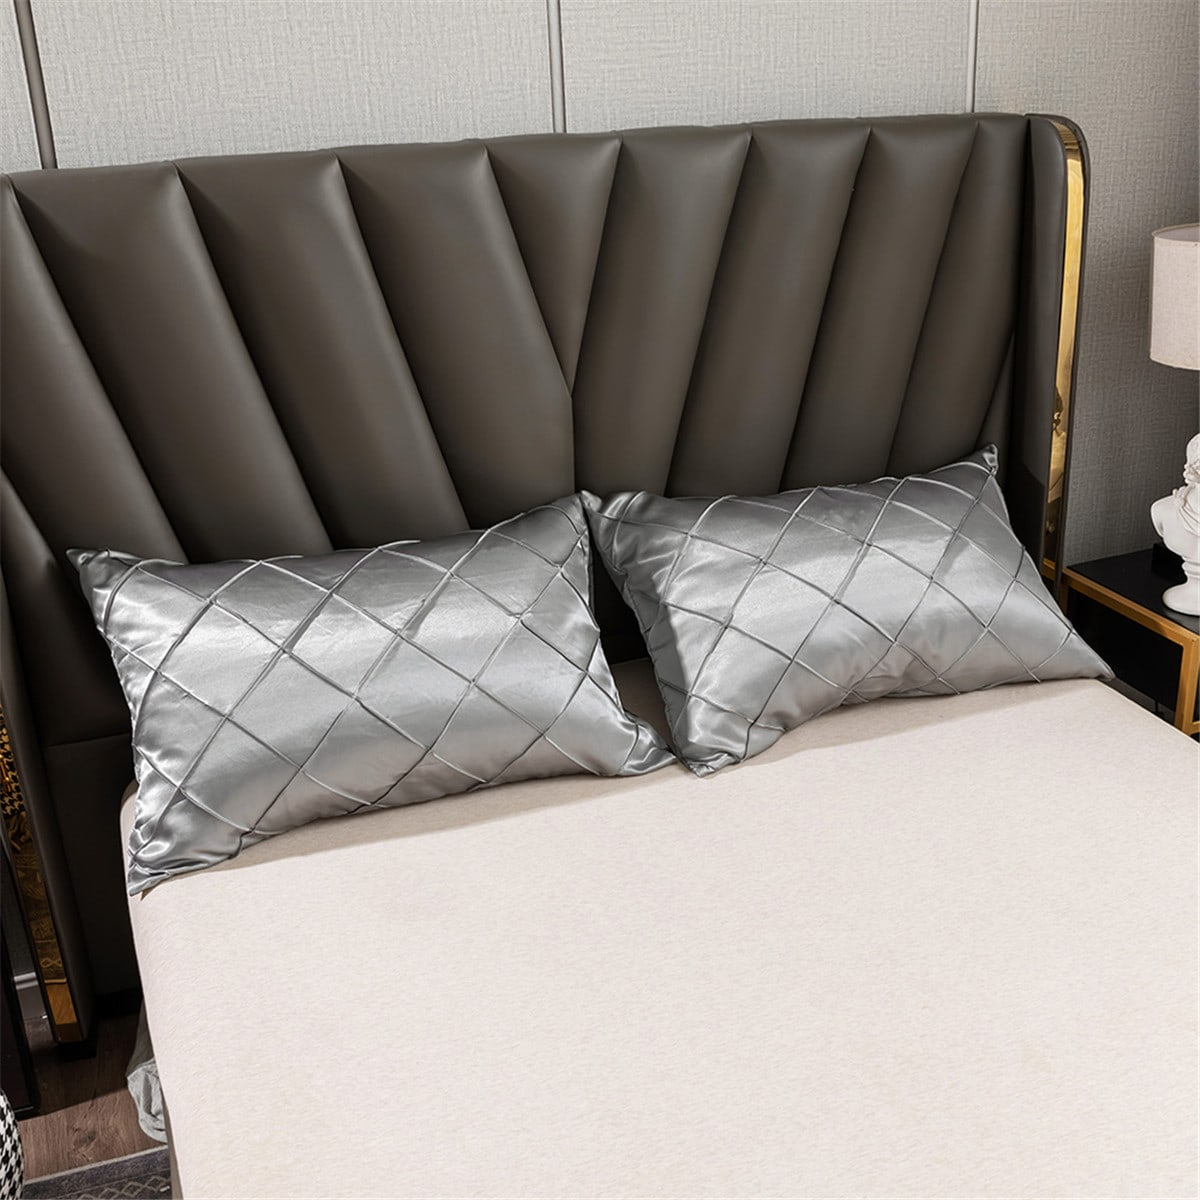 1Pair Solid Color Satin Pillowcase Without Filler